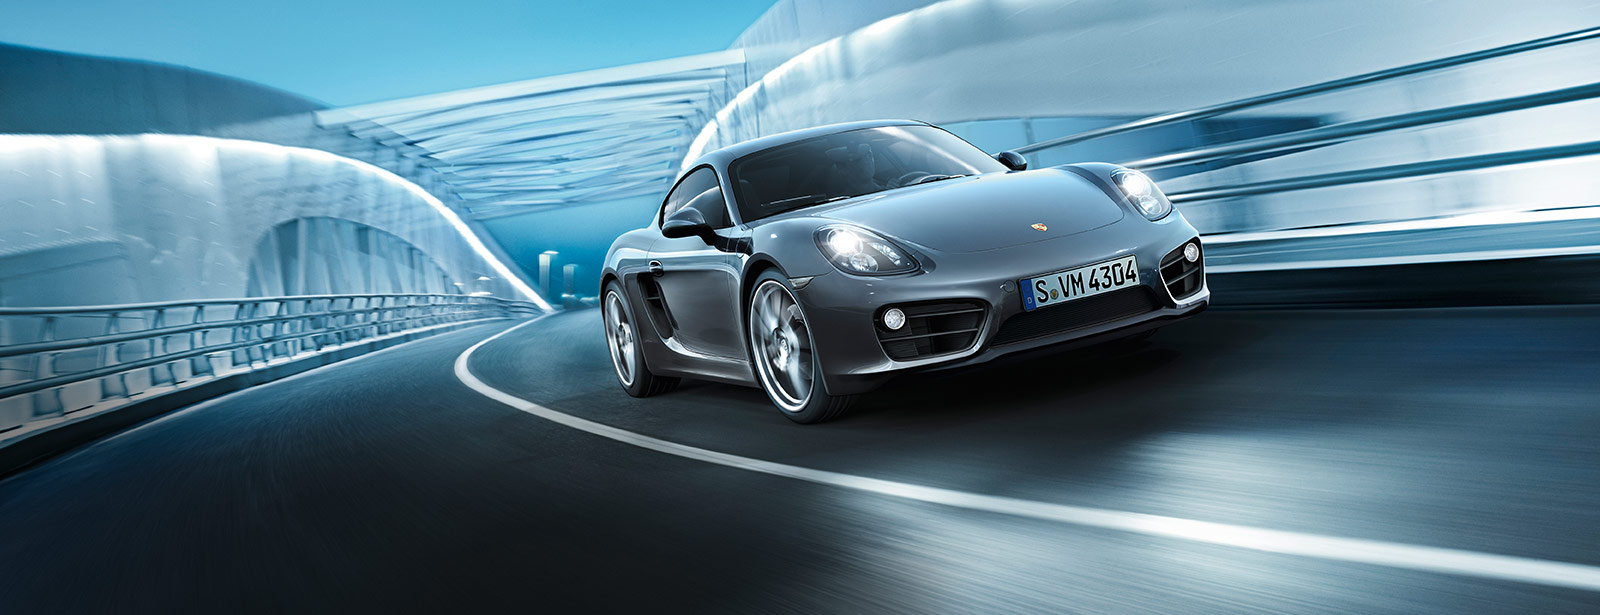 porsche wallpaper (Porsche Cayman)